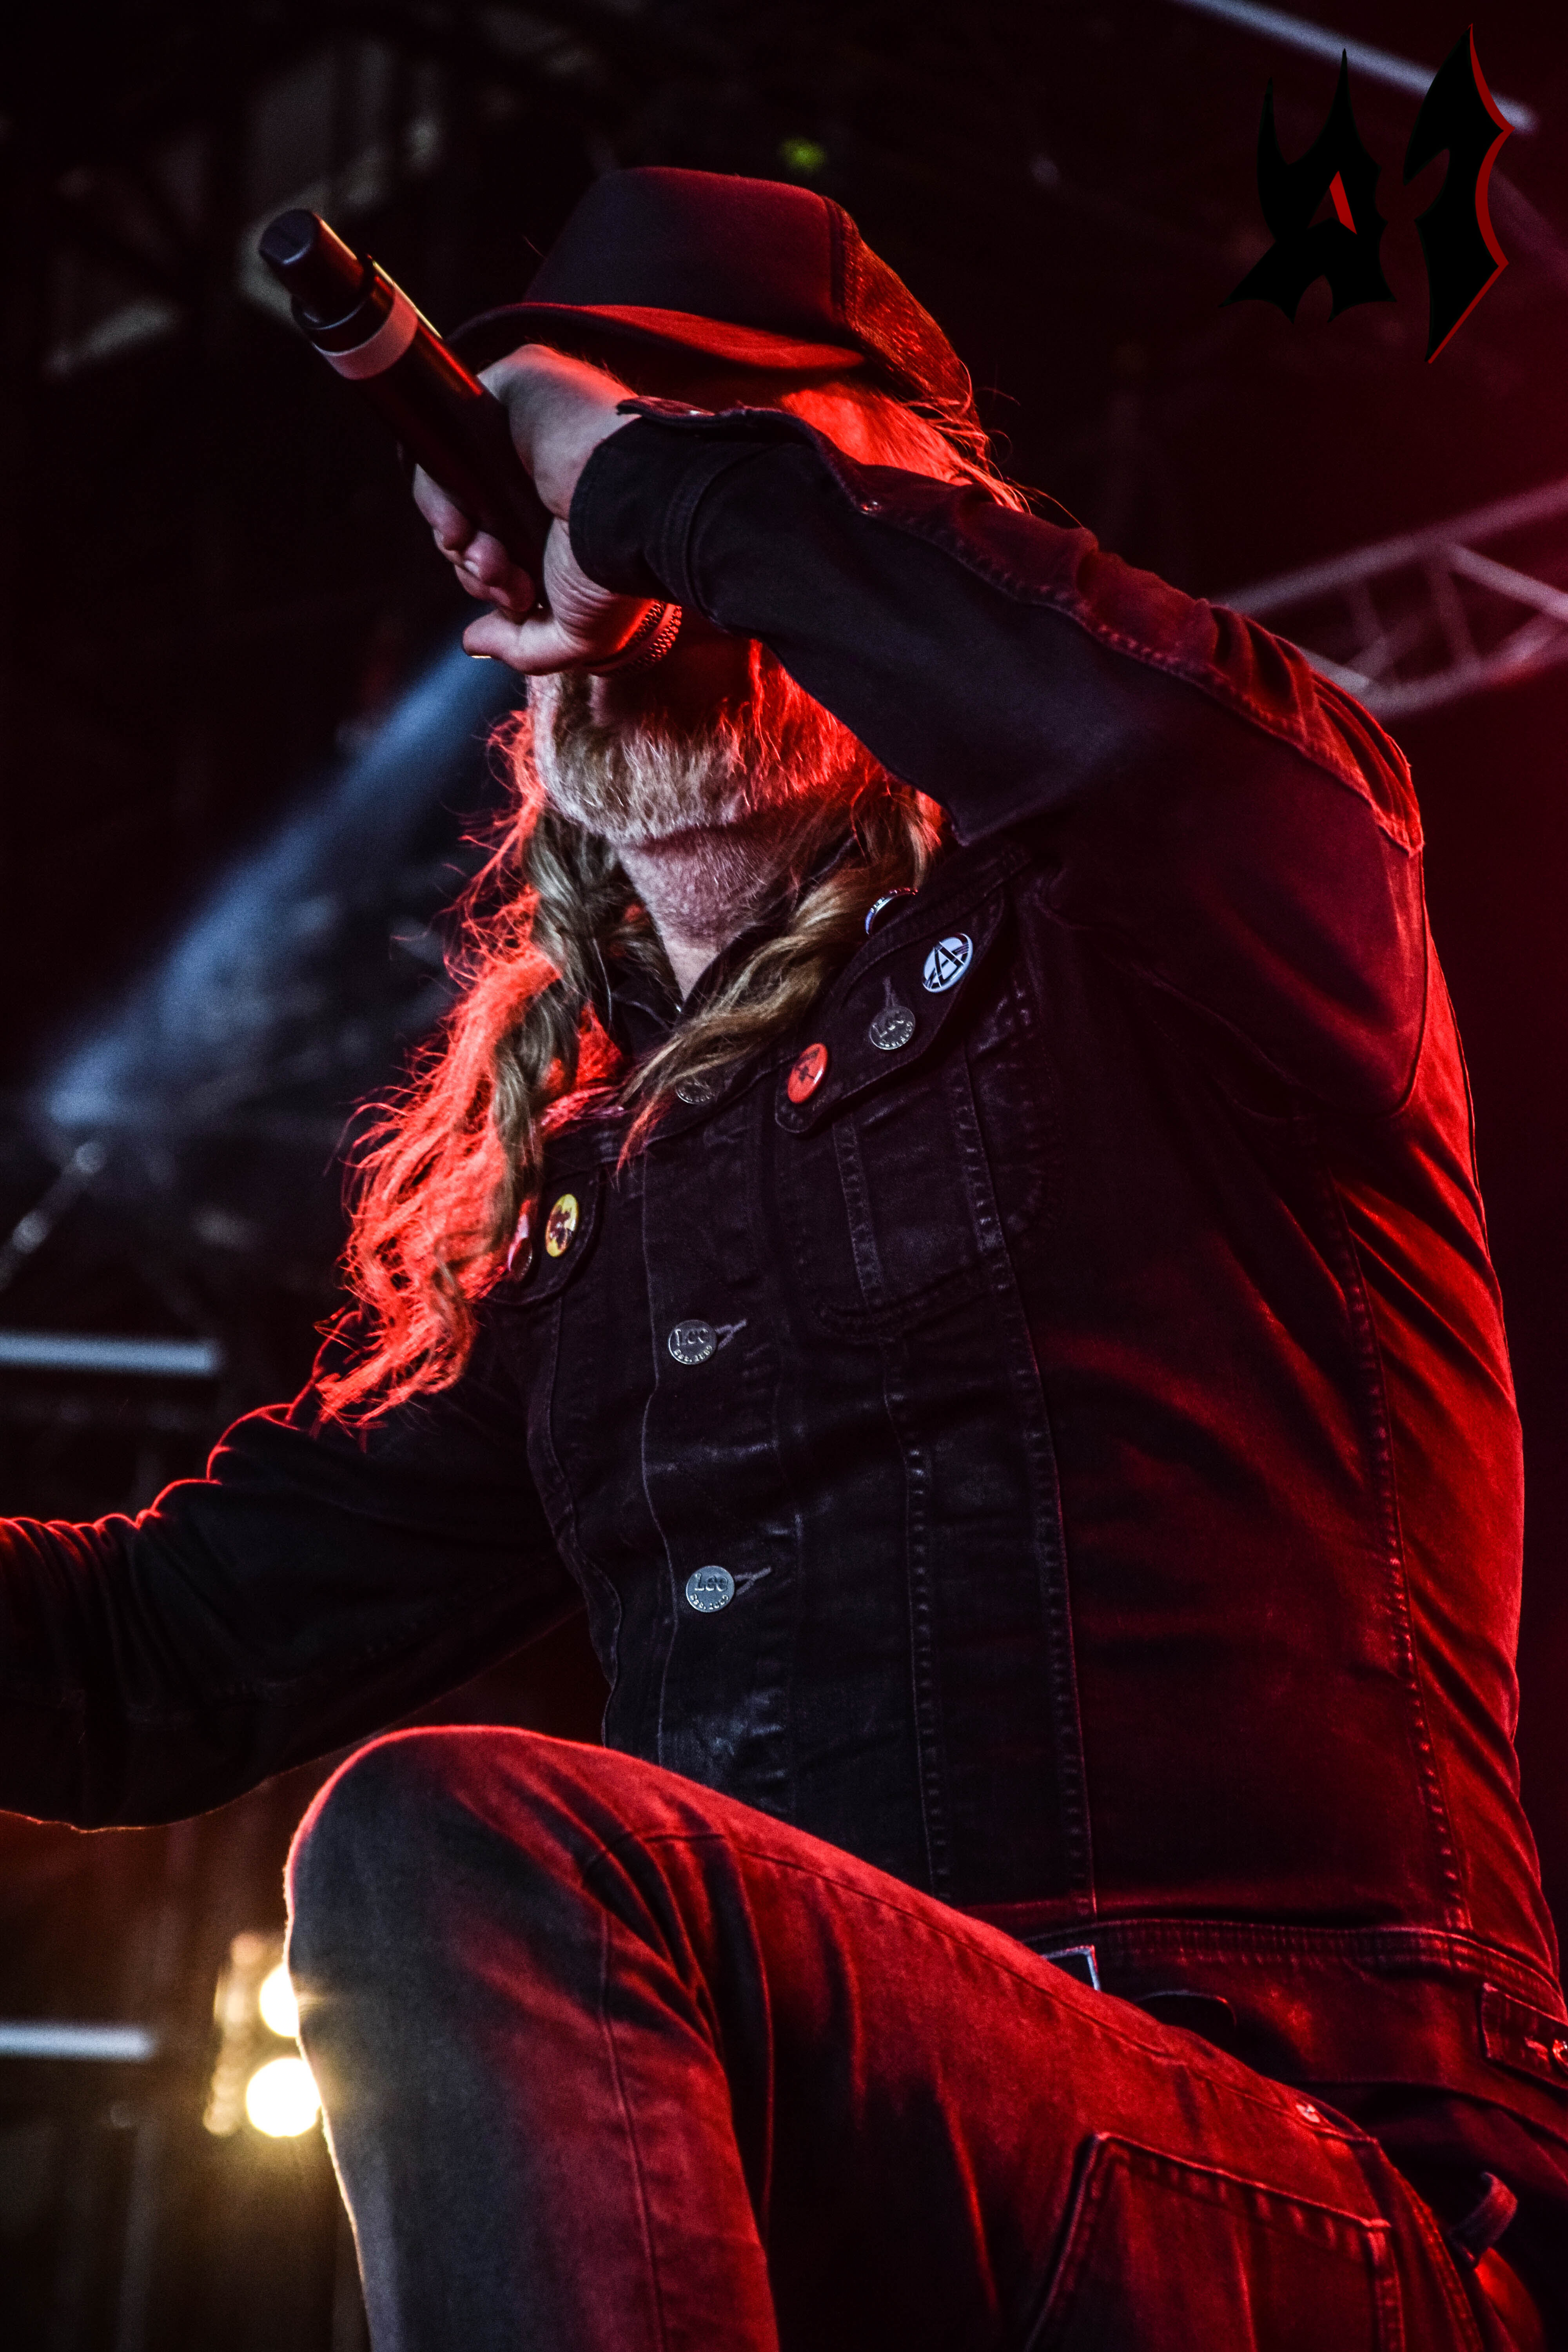 Hellfest - Day 3 - The Lurking Fear 11